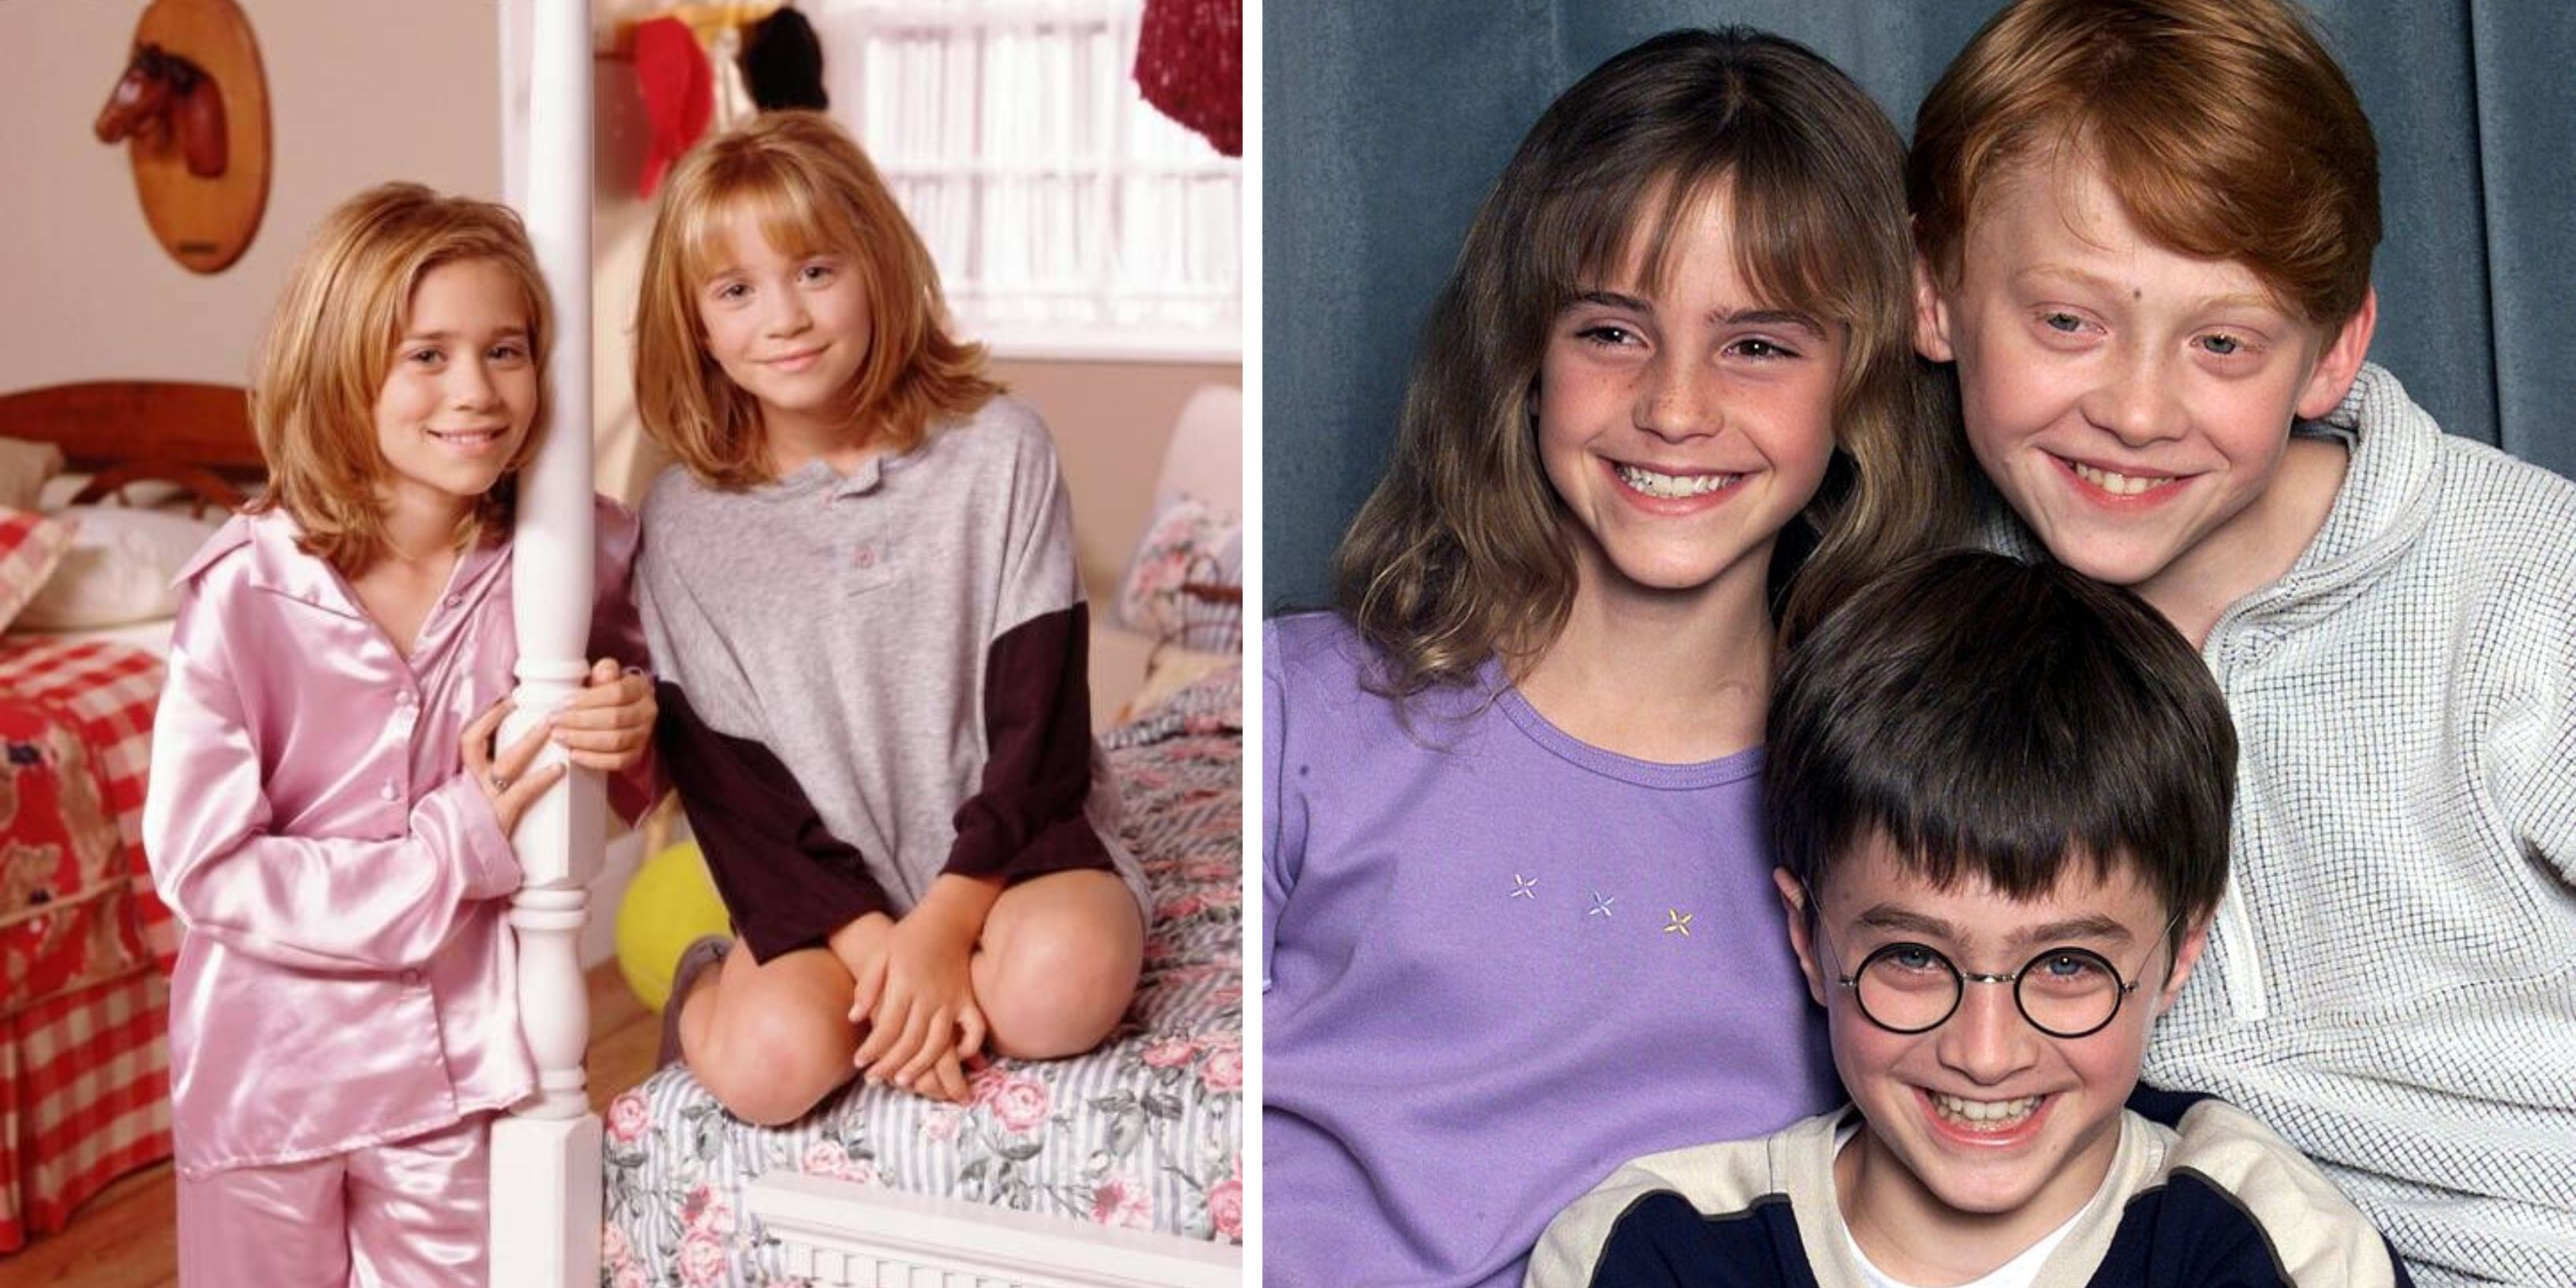 10 Actors Who Rose To Fame Before Turning 18 (Not On The Disney Channel)